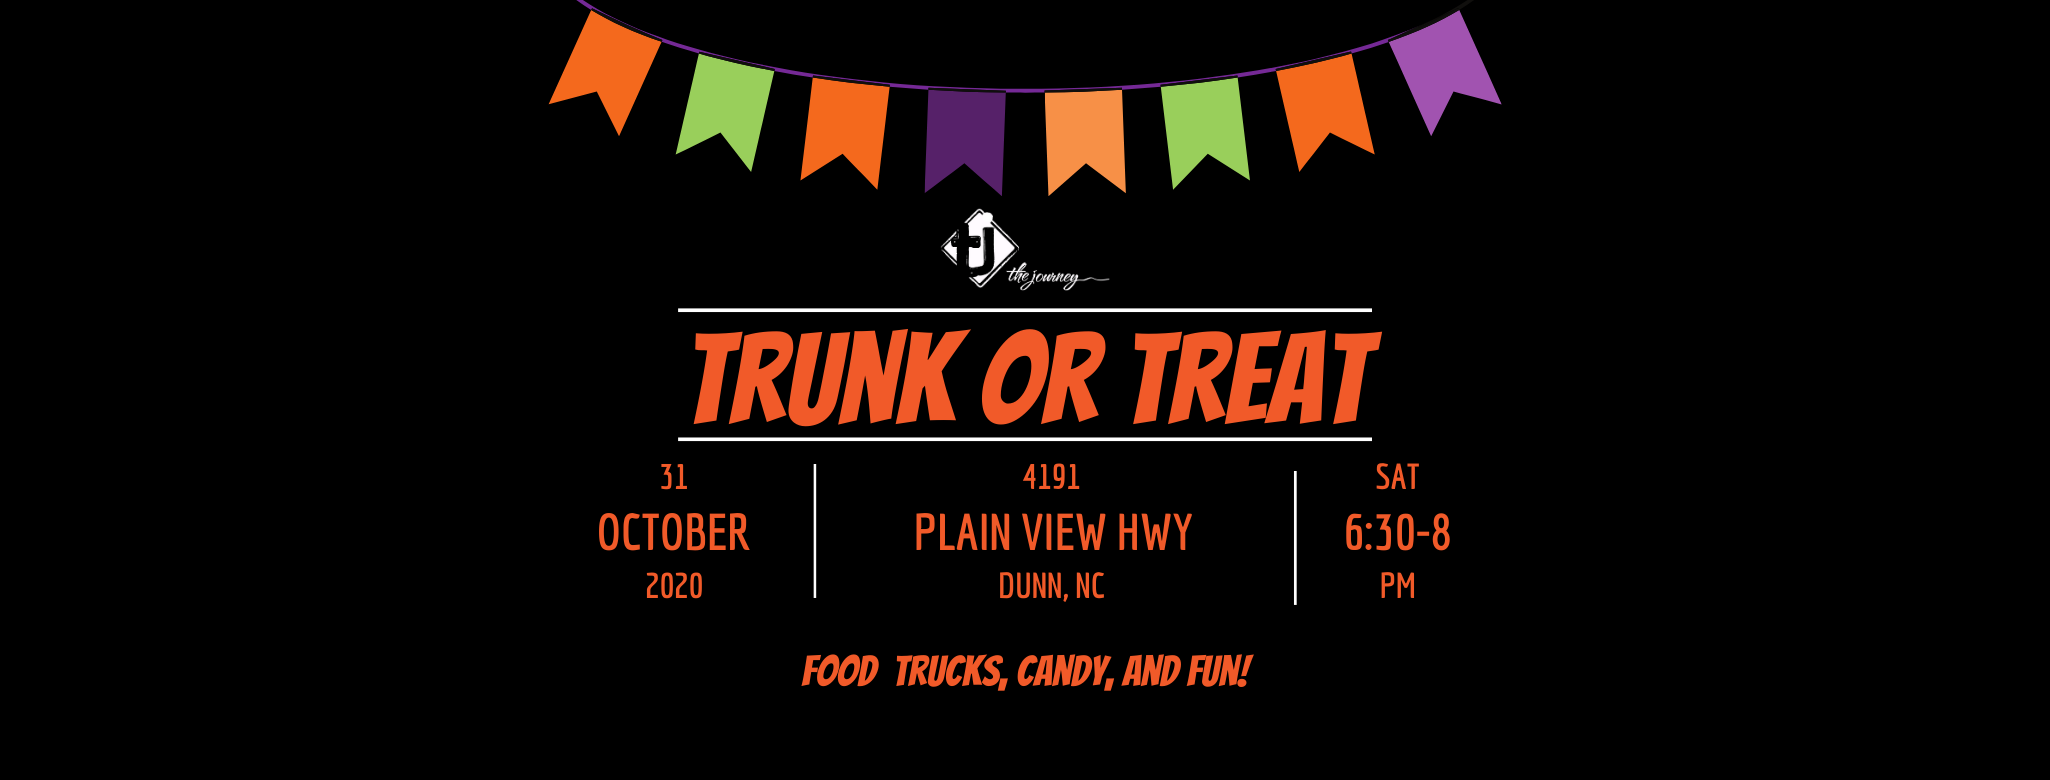 Copy of Copy of Trunk or treat